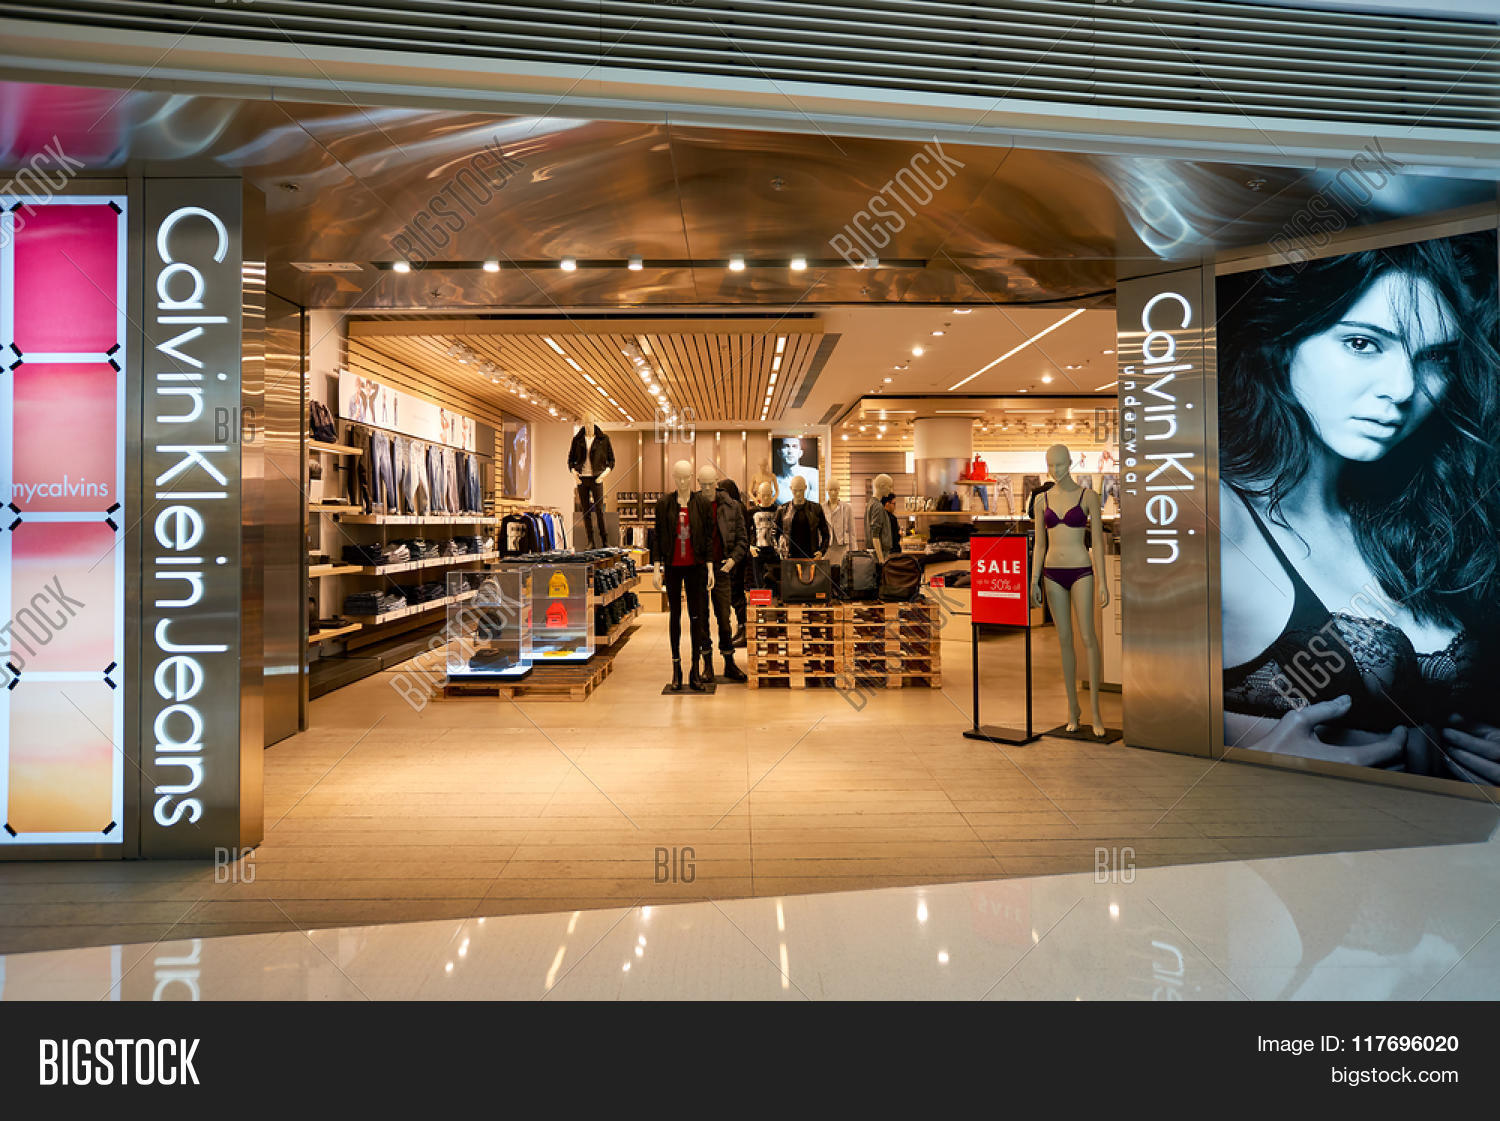 hong kong january 26 2016 entryway to calvin klein store at elements shopping mall calvin. Black Bedroom Furniture Sets. Home Design Ideas